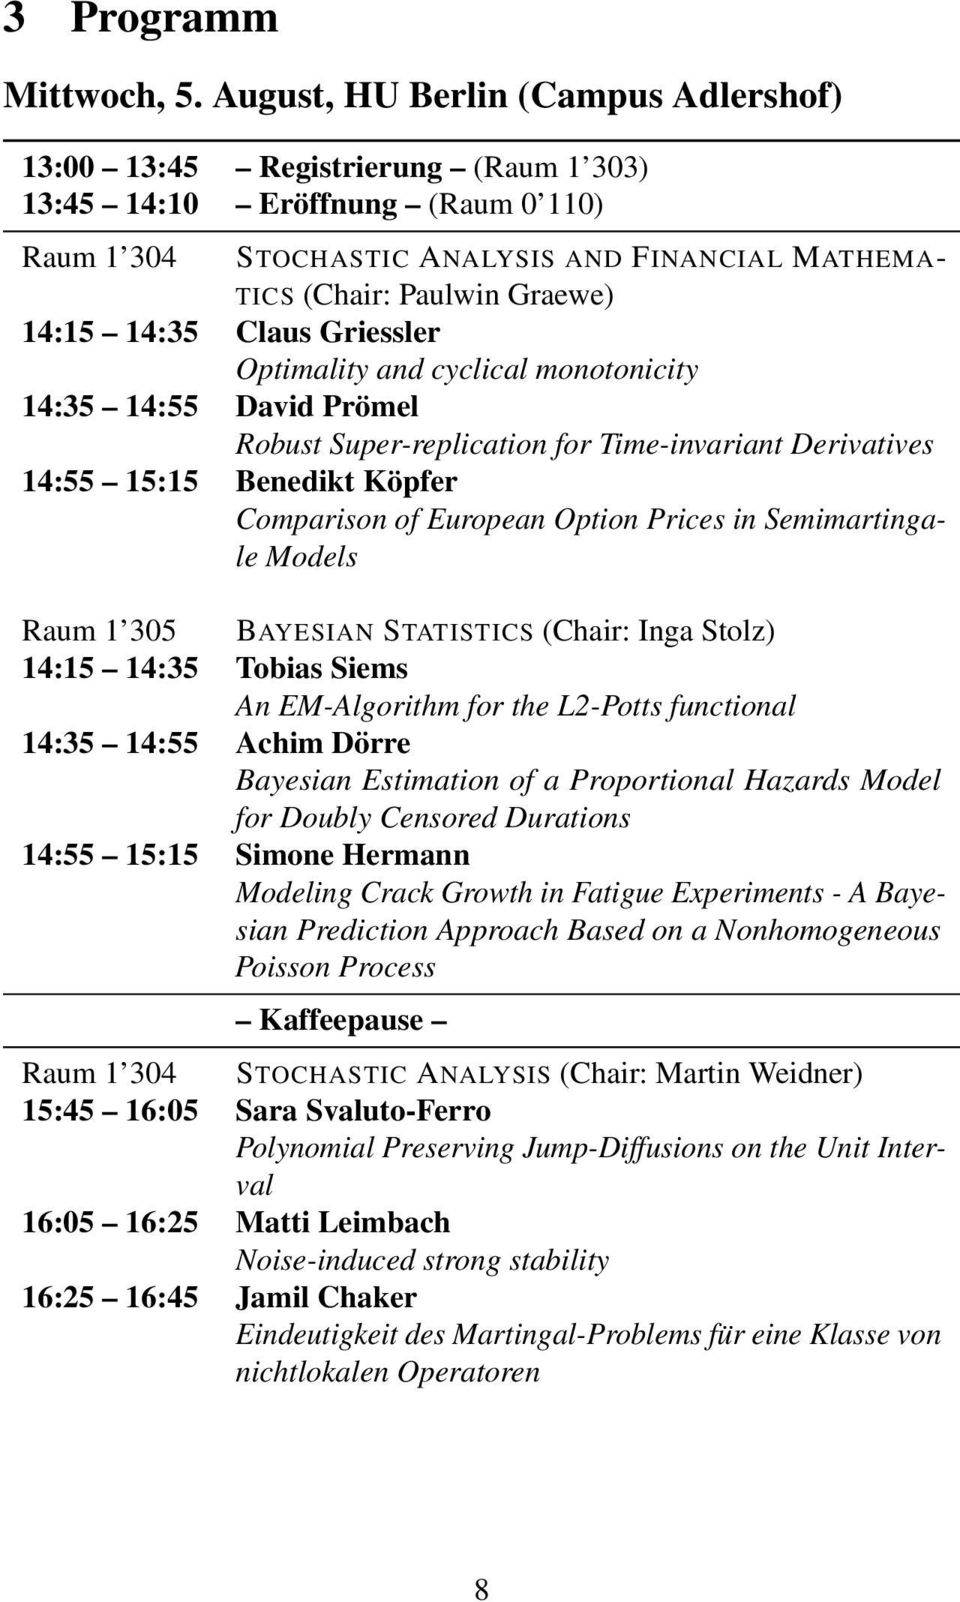 14:35 Claus Griessler Optimality and cyclical monotonicity 14:35 14:55 David Prömel Robust Super-replication for Time-invariant Derivatives 14:55 15:15 Benedikt Köpfer Comparison of European Option